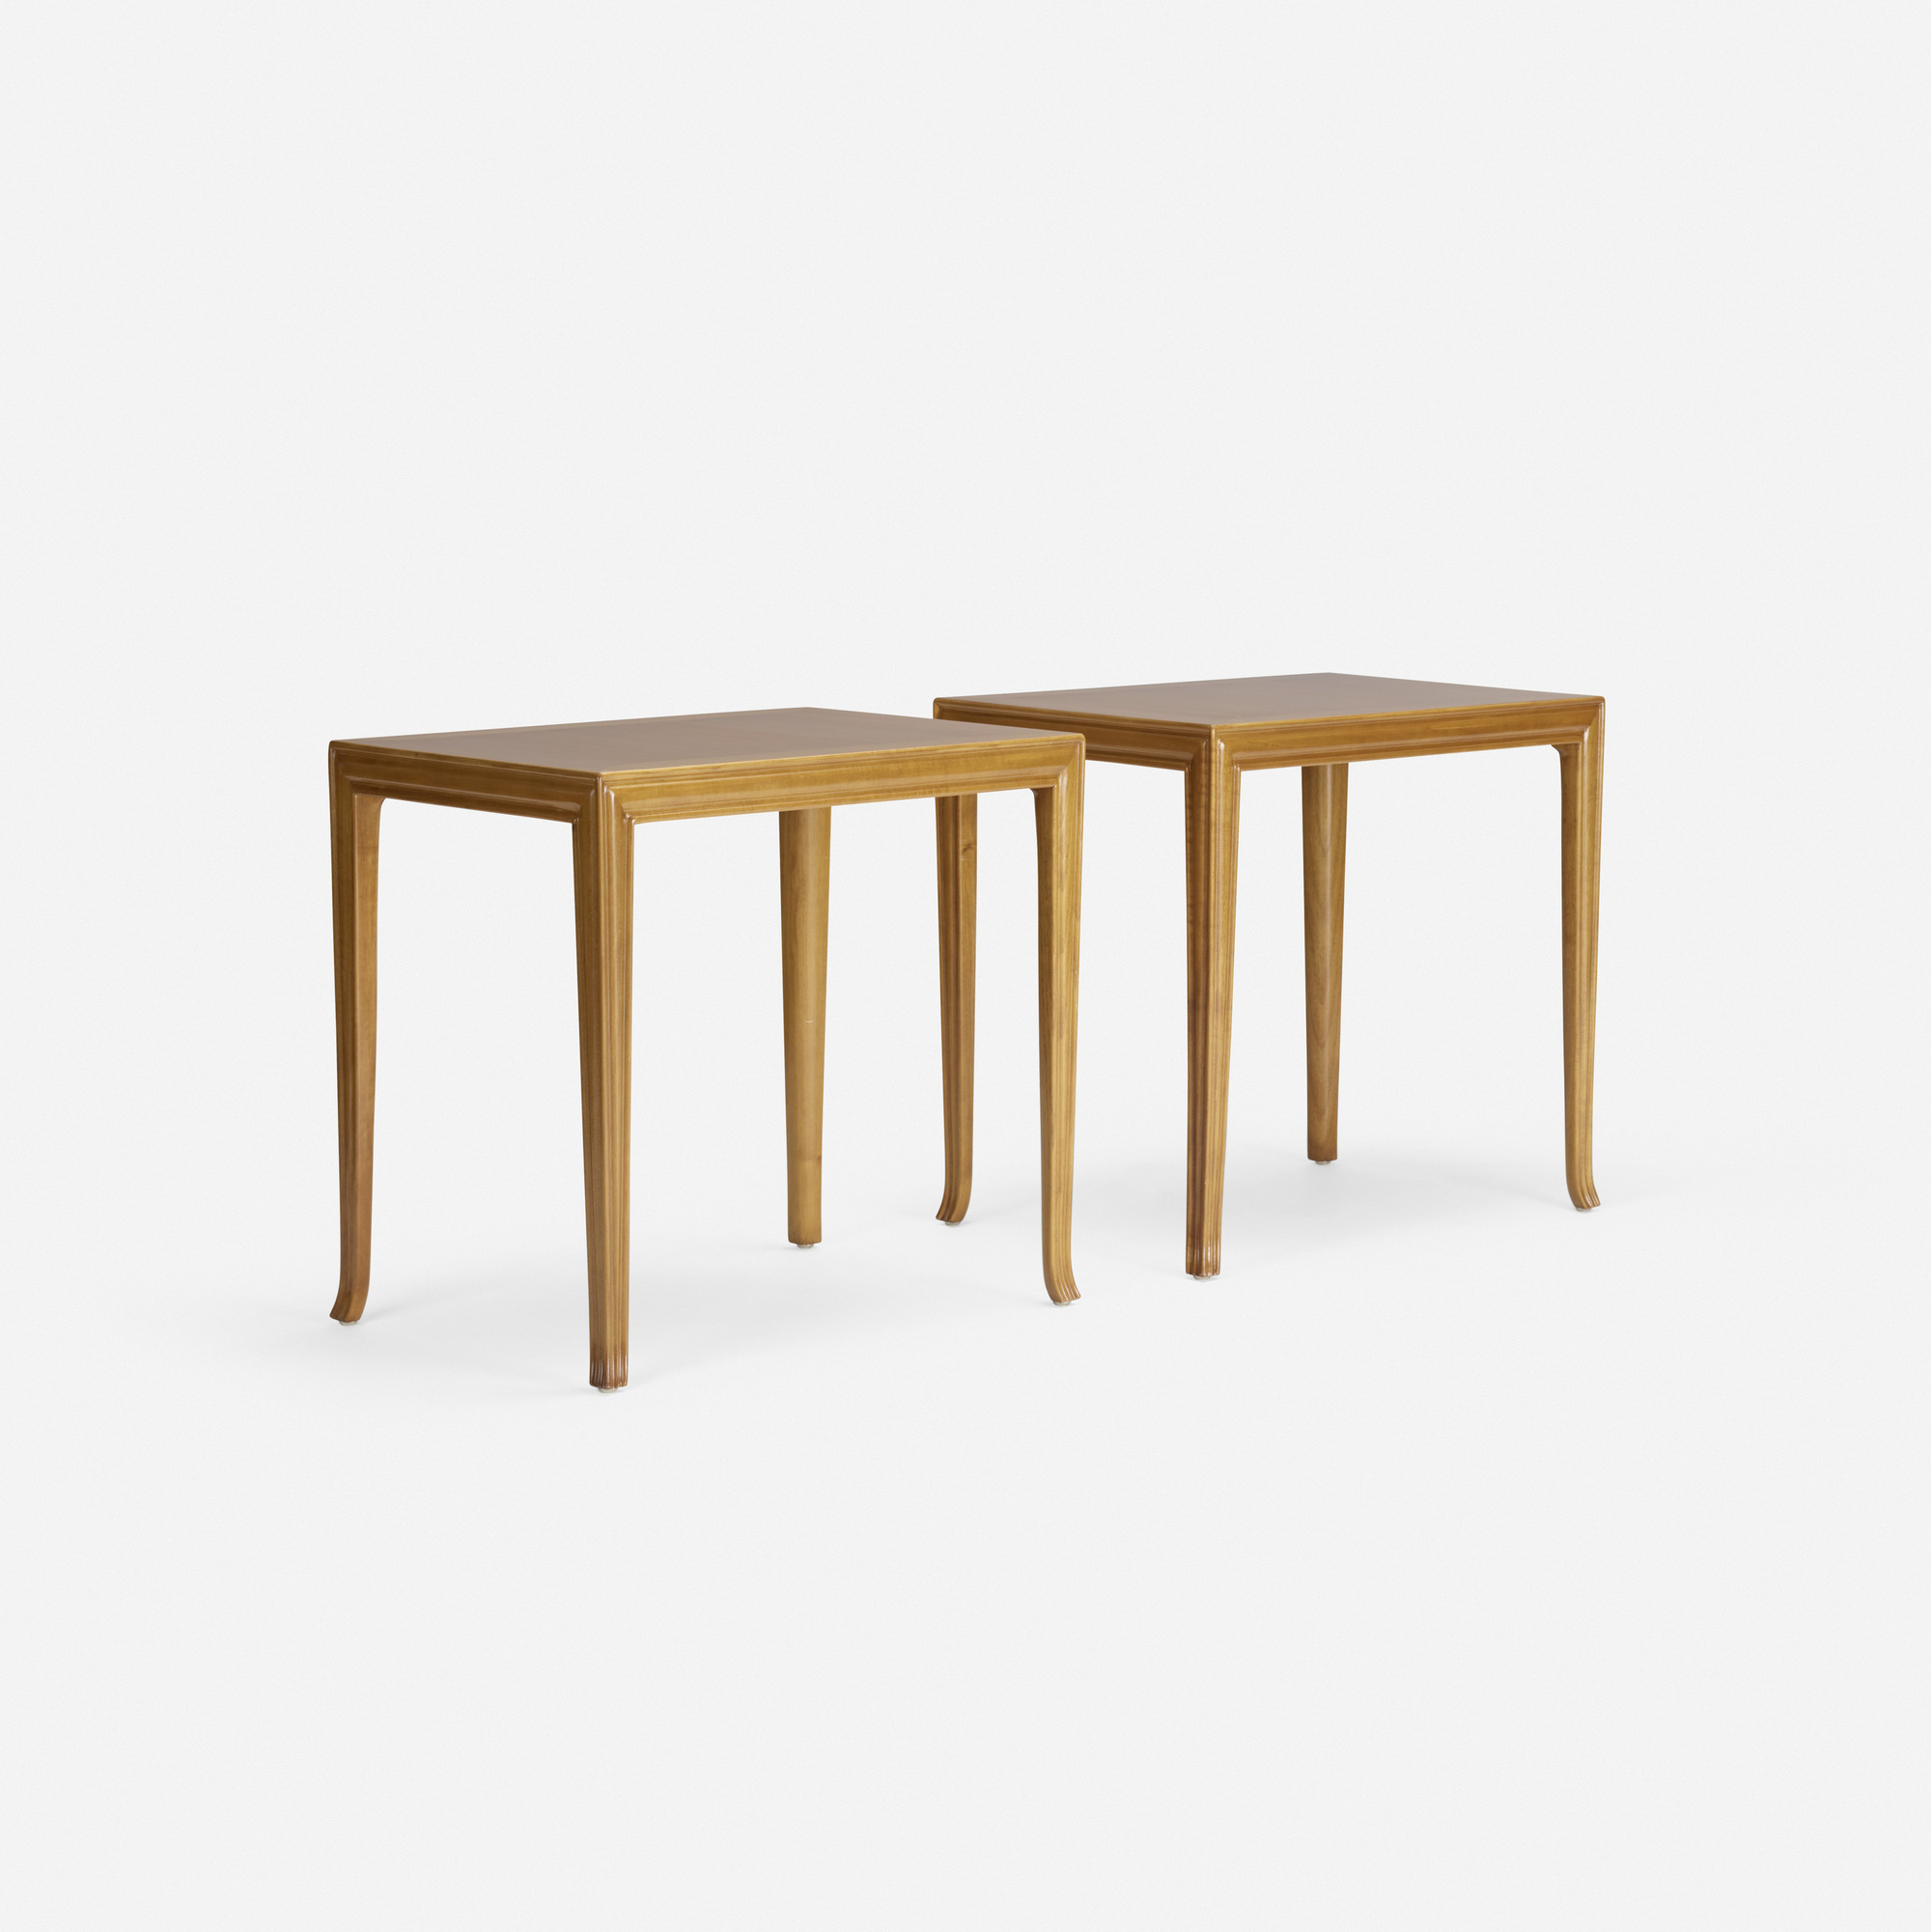 durhamlouis tables item louis trim occasional round durham phillipe products width b traditional table threshold lamp height